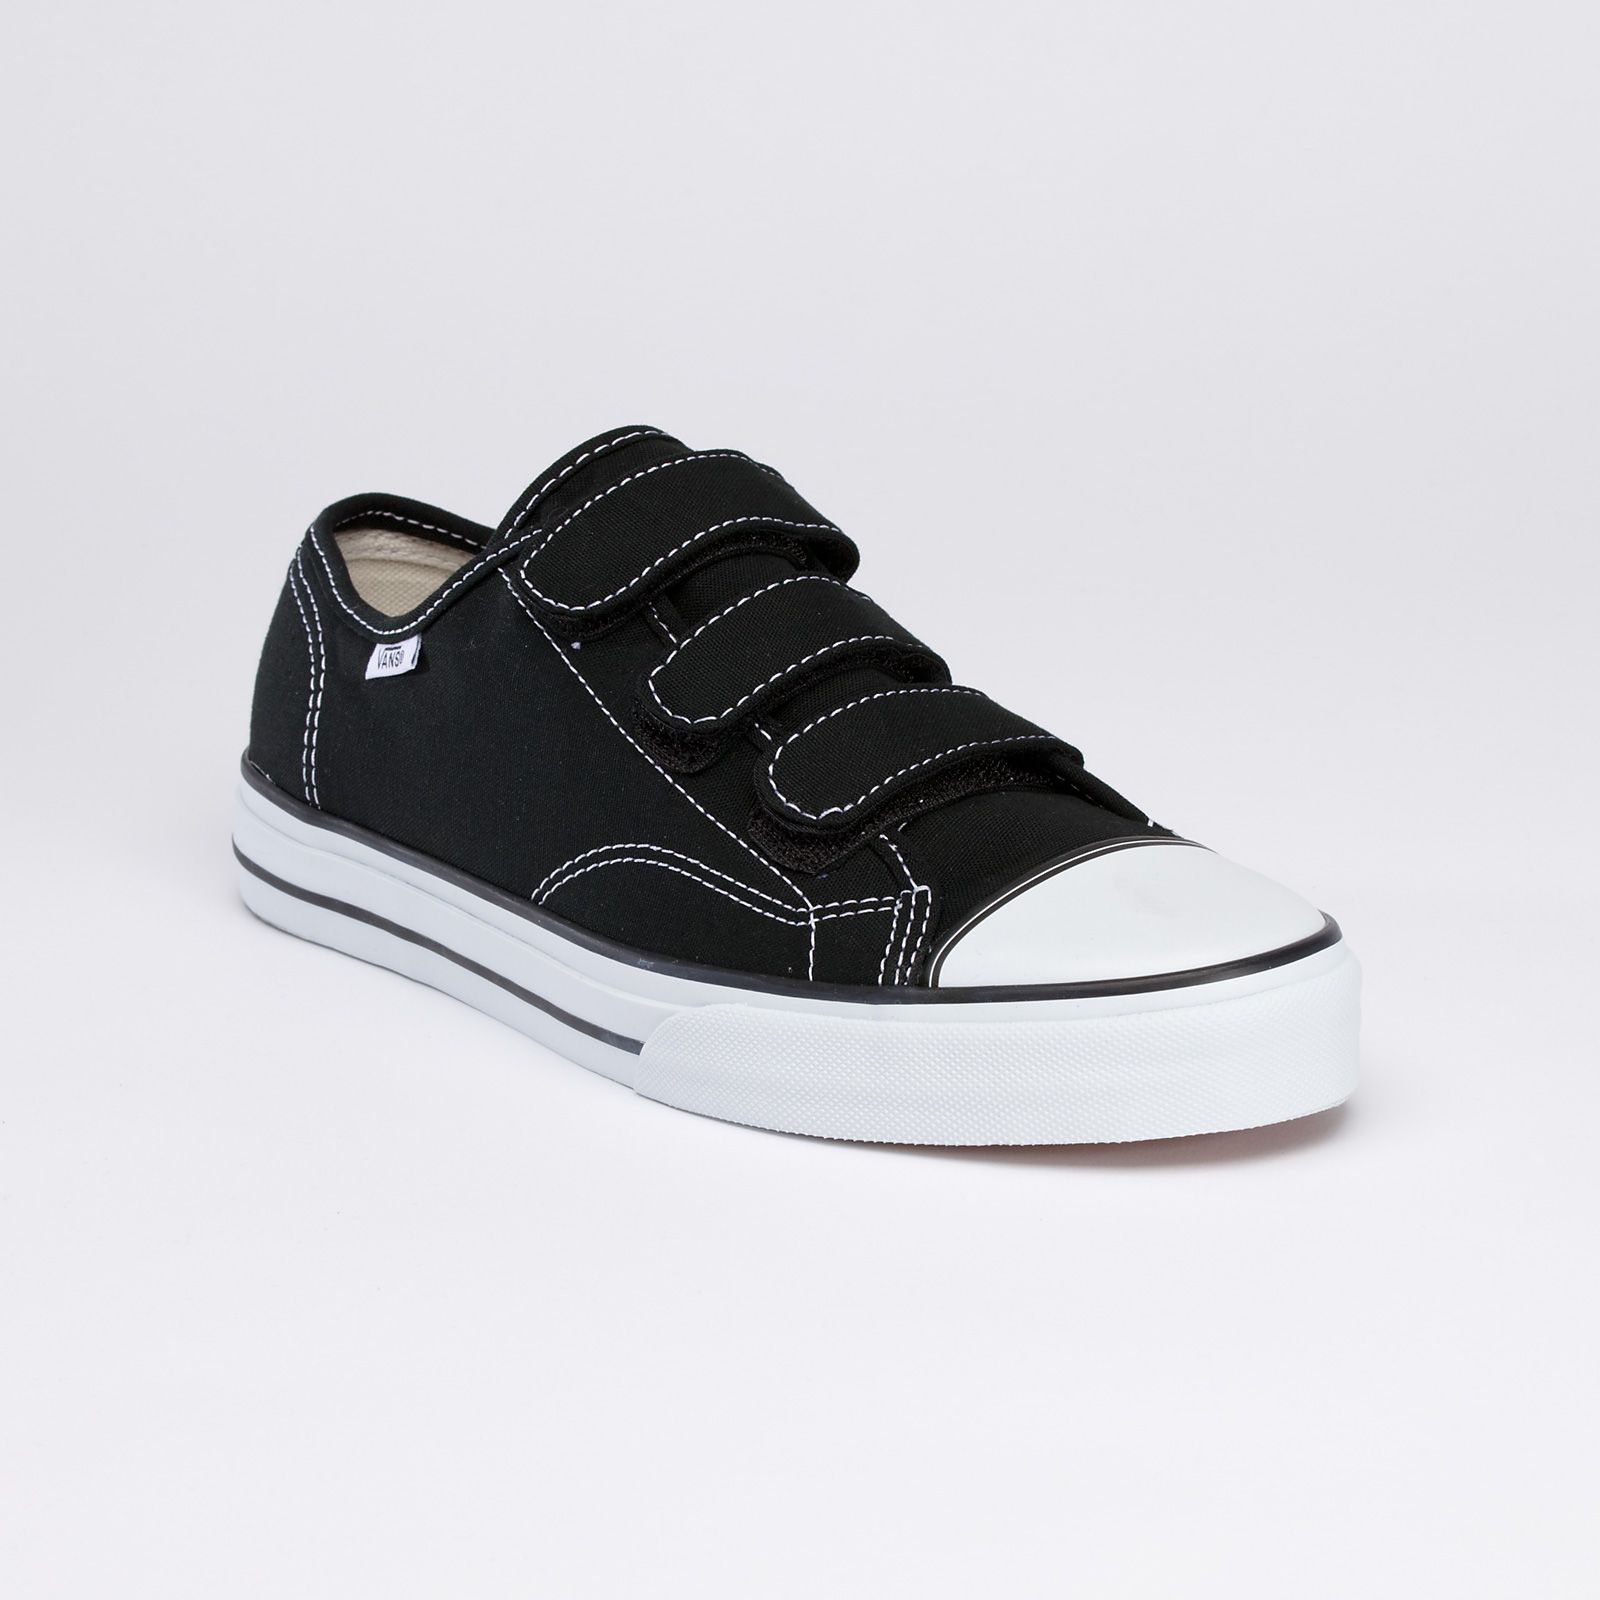 9685aec25f Buy 2 OFF ANY vans prison issue 23 black CASE AND GET 70% OFF!